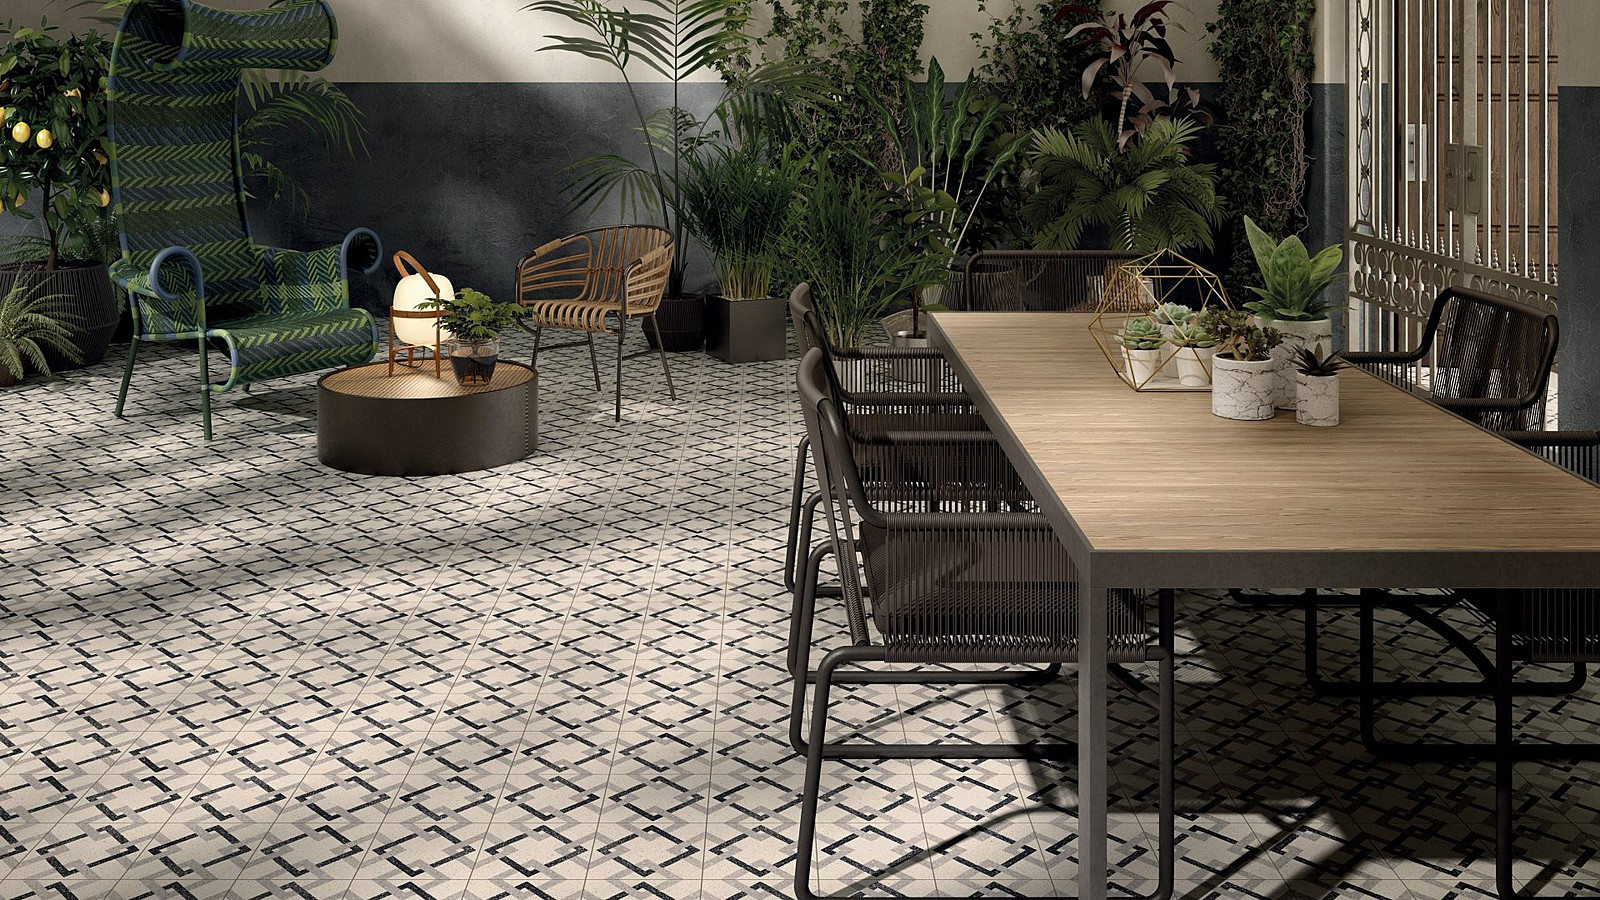 Meubles Design Toulouse Imitations Carreaux Ciments - Lmcs La Maison Du Carrelage